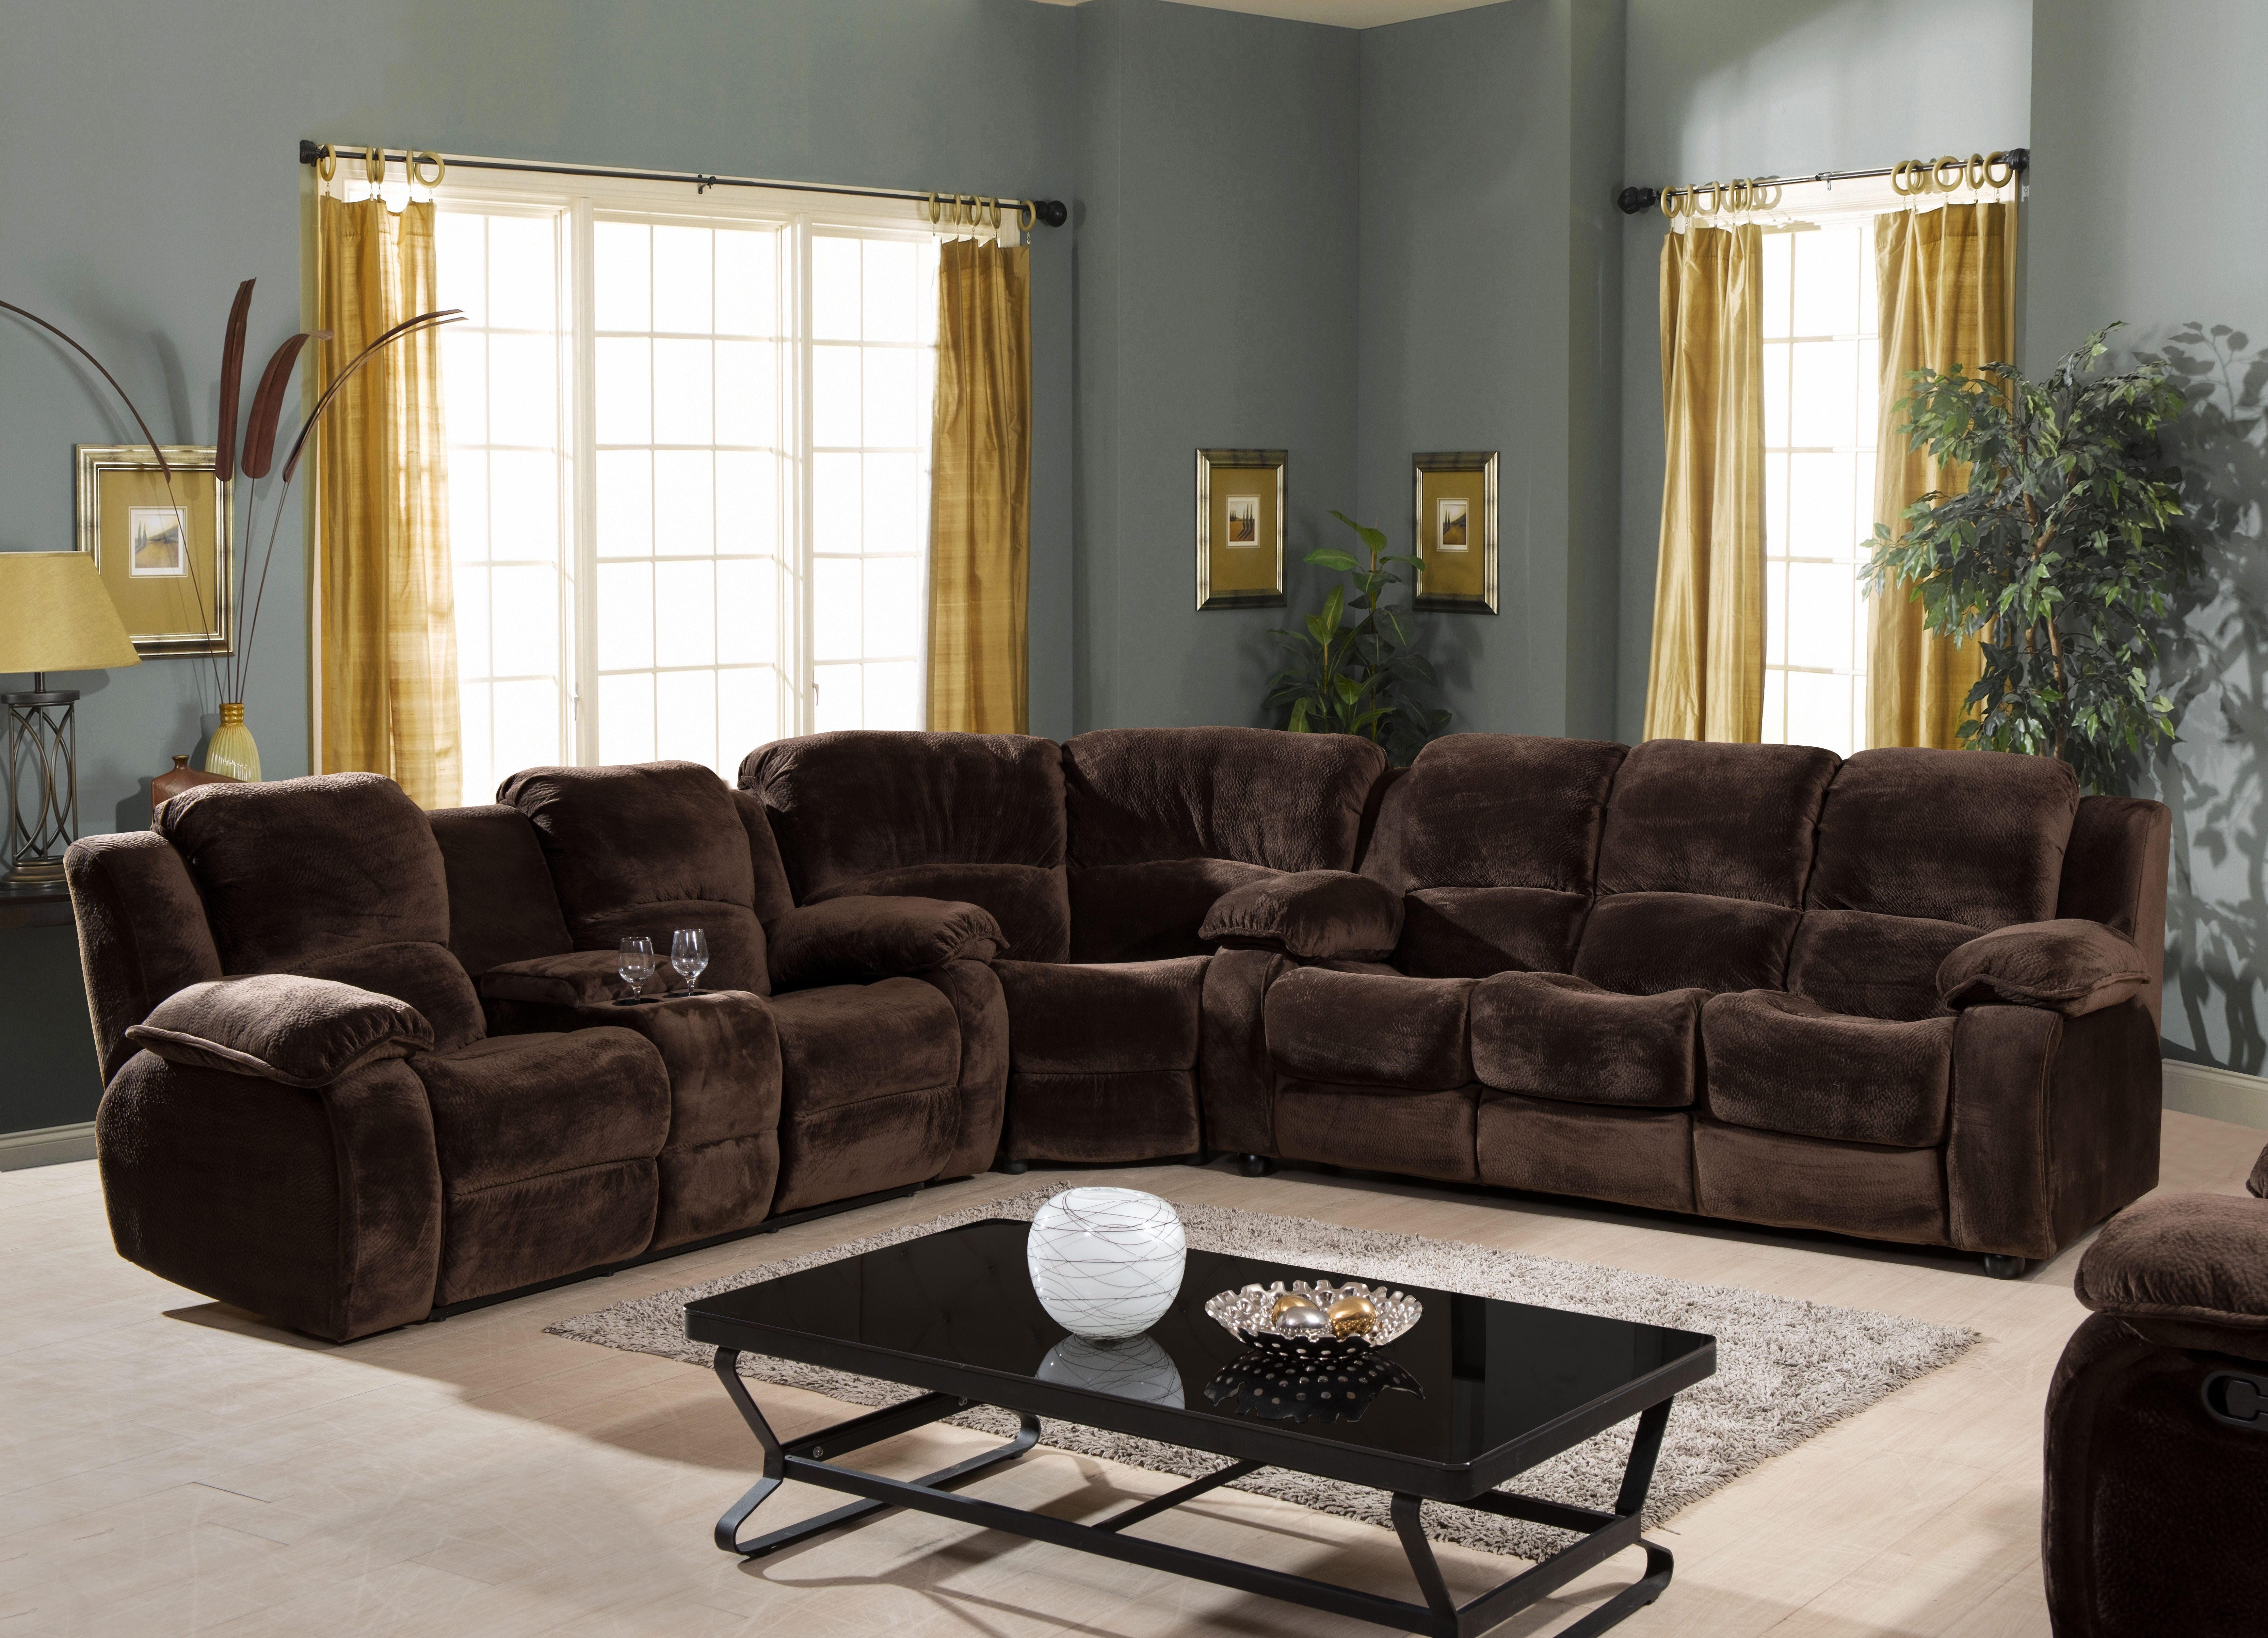 Stock Information – United Furniture Throughout Most Recent Sectional Sofas In Stock (View 20 of 20)